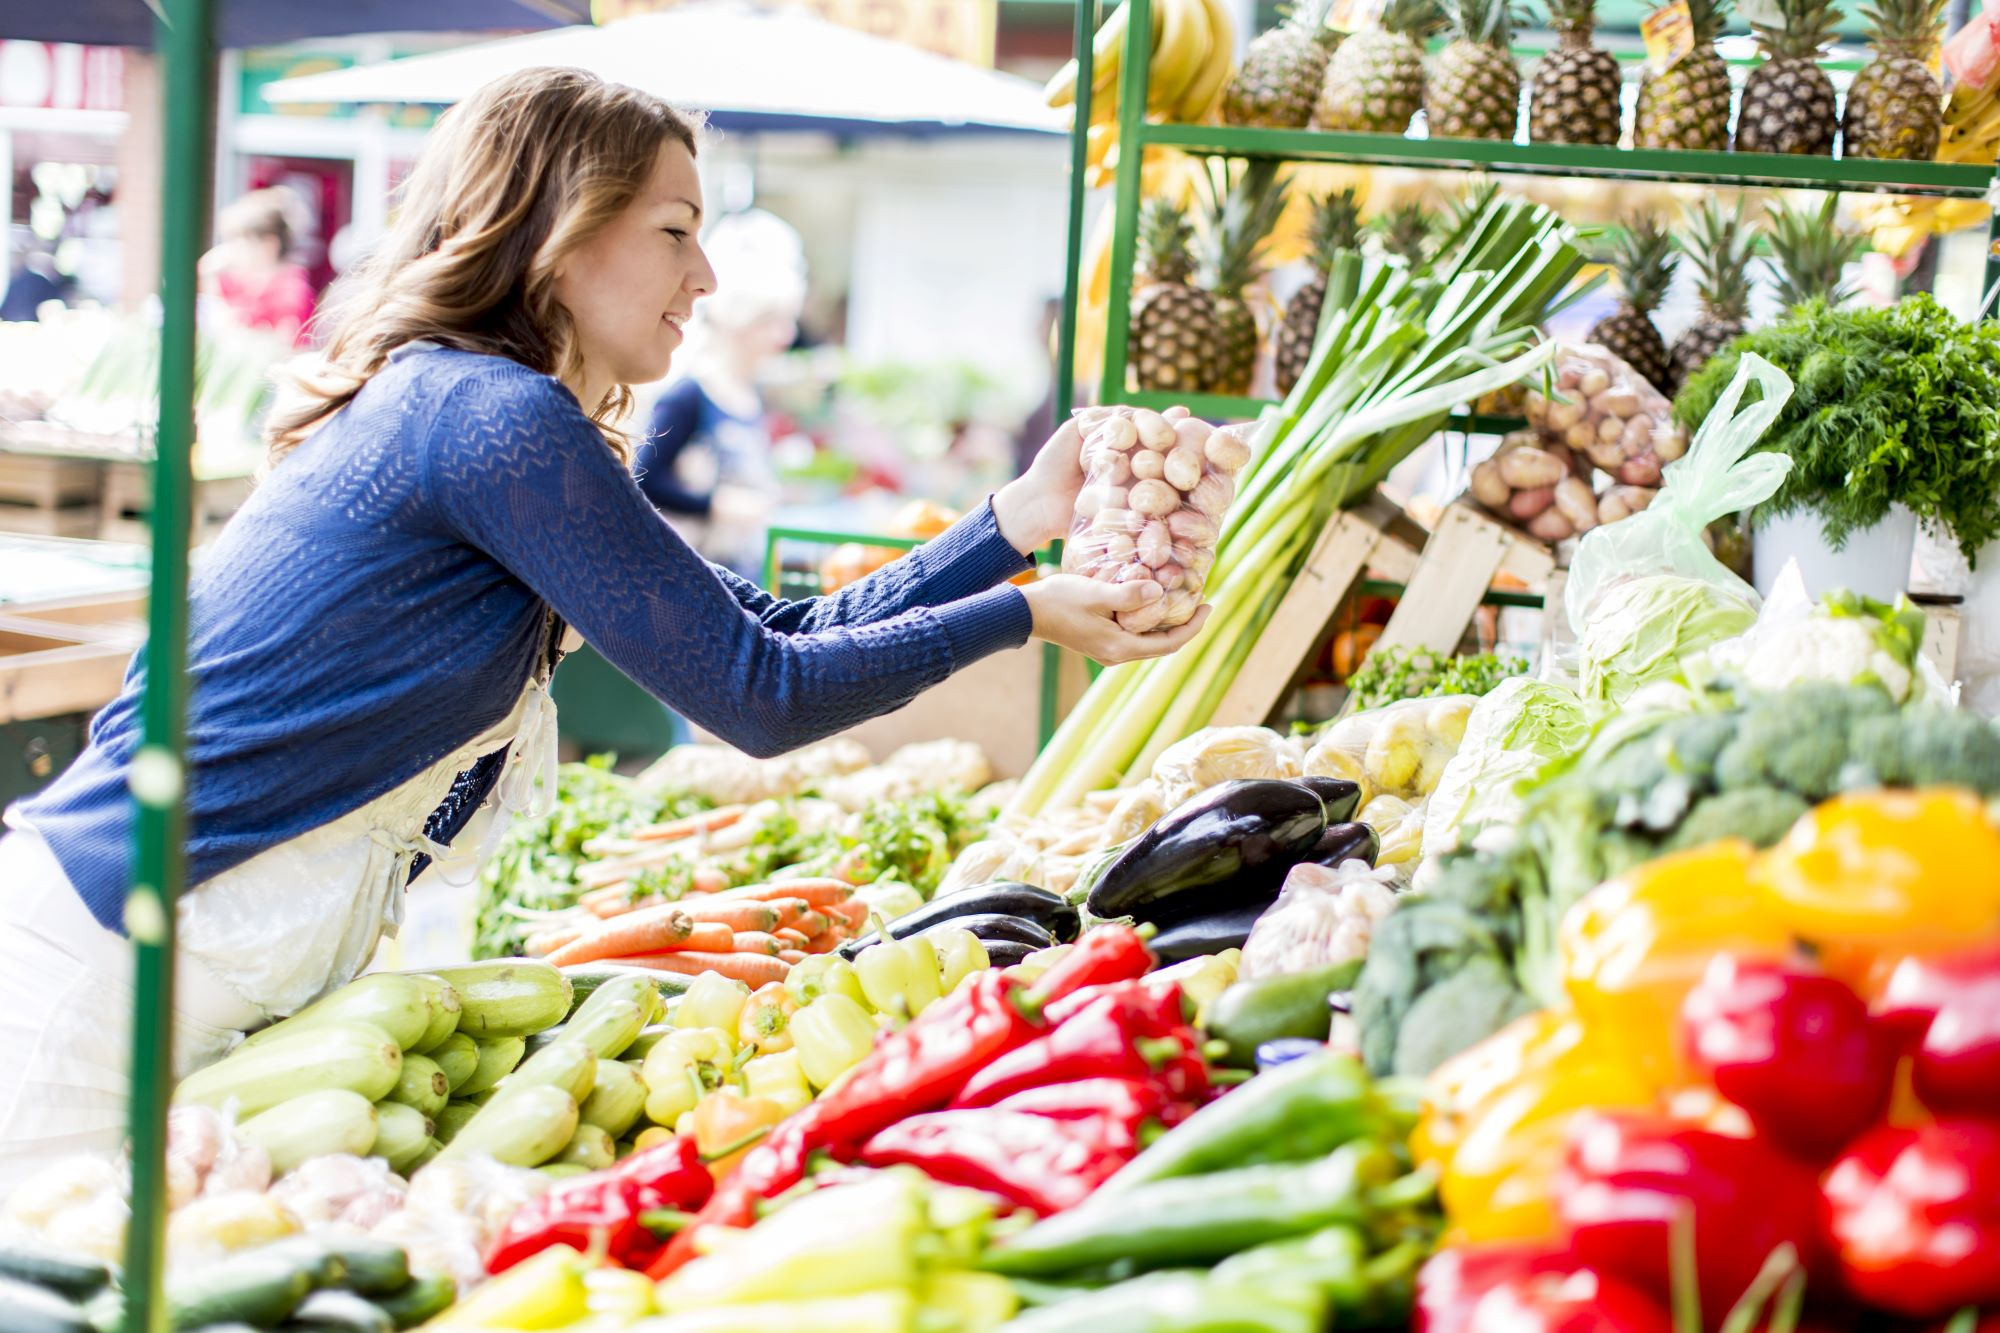 Dig into these Farmers Markets in the Boston Suburbs